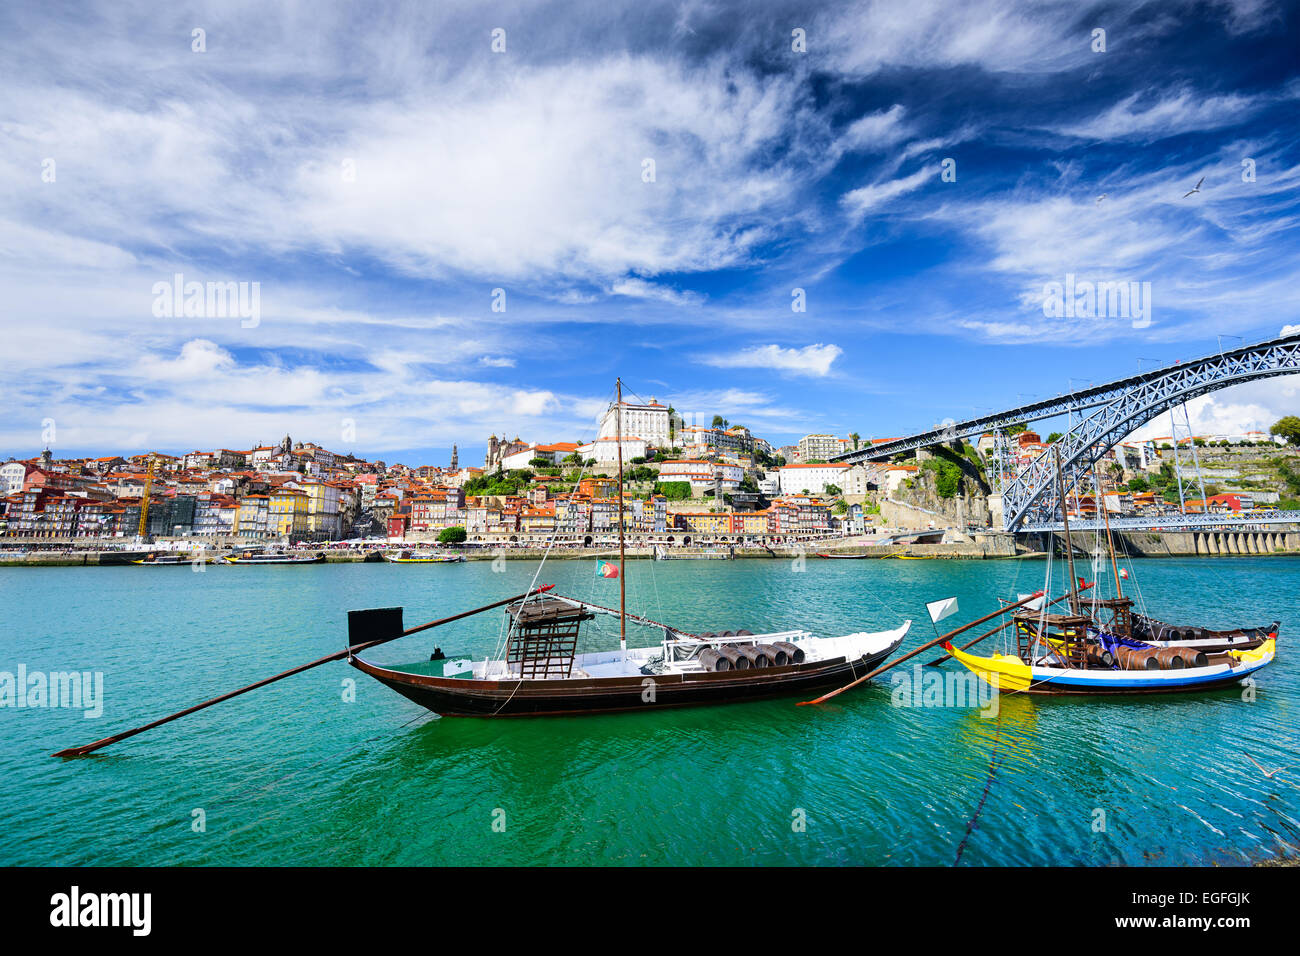 Porto, Portugal old town view on the Douro River with rabelo boats. - Stock Image